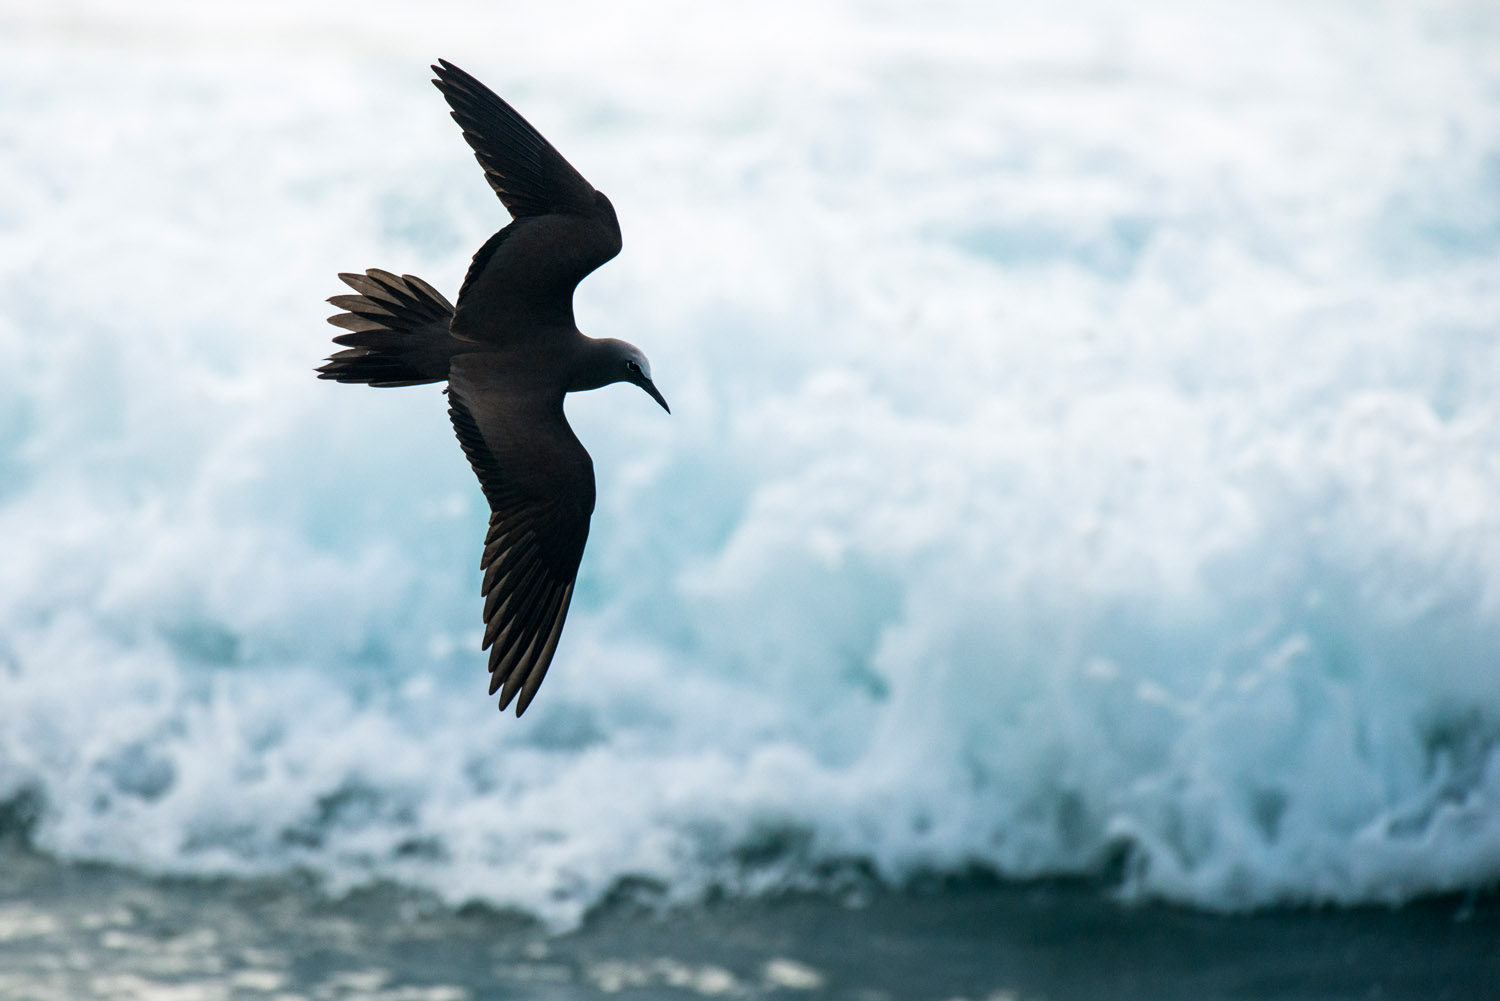 Lesser noddy in flight over waves, Cousin Island Special Reserve, Seychelles